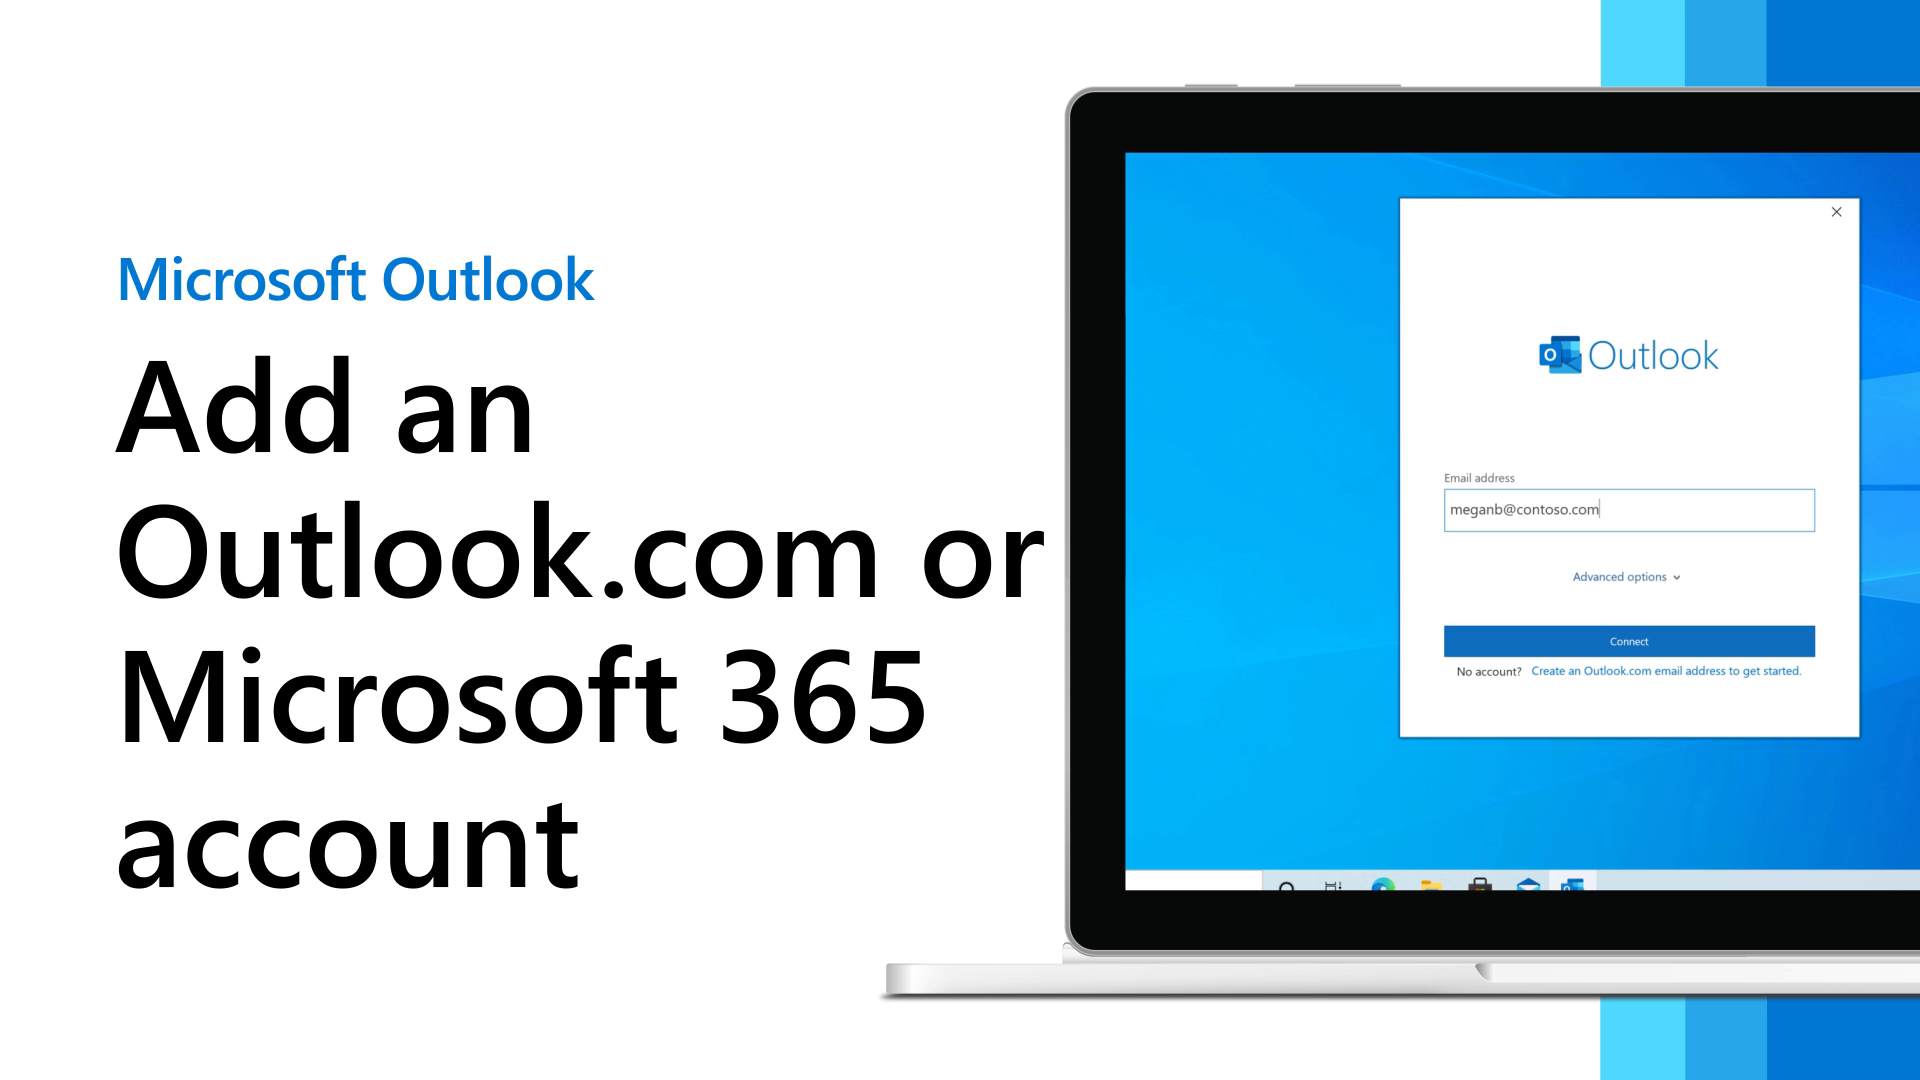 Add an Outlook.com or Office 10 account